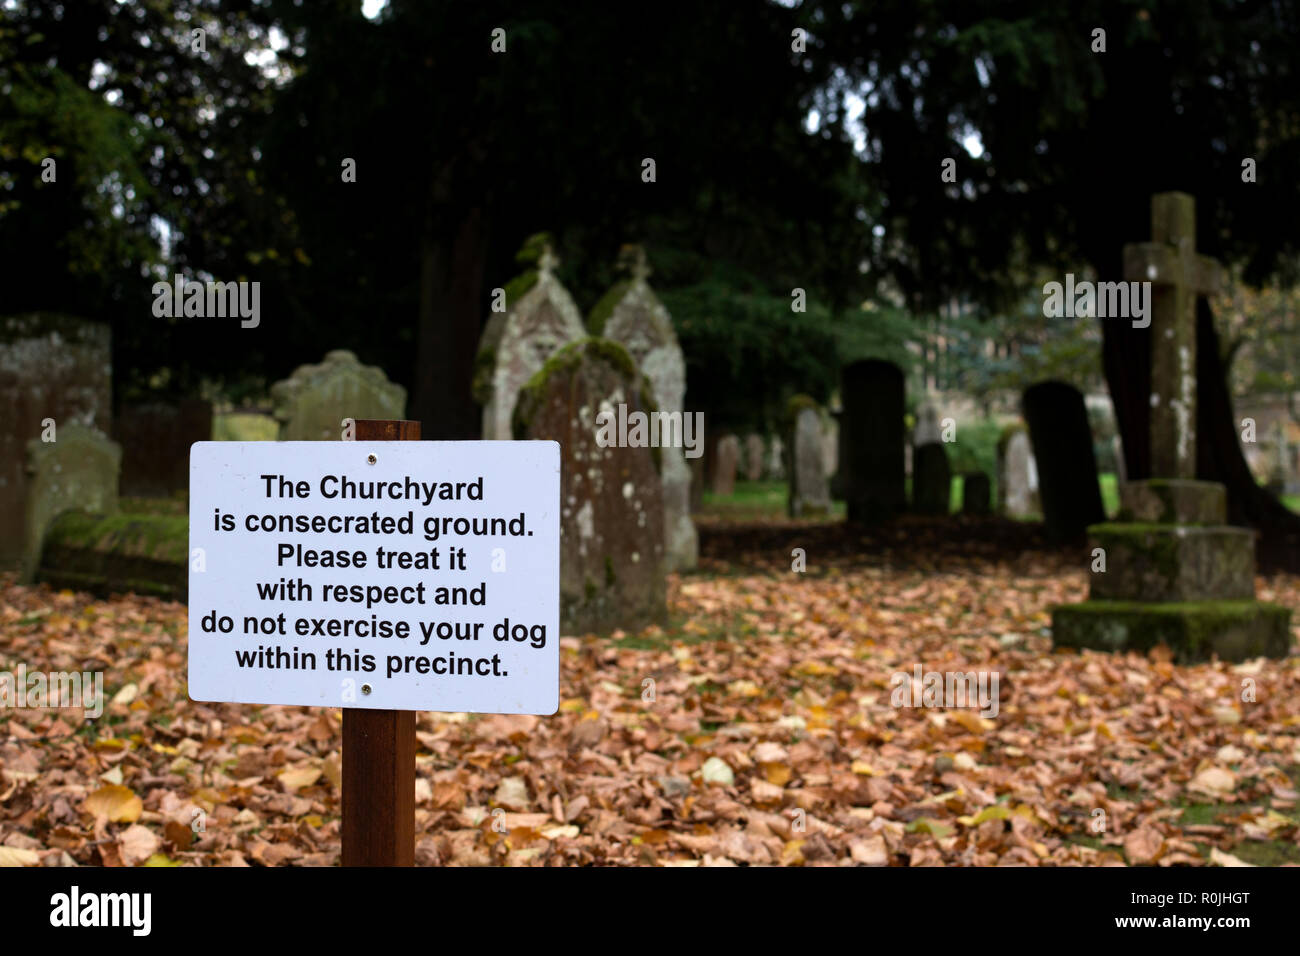 Sign against exercising dogs in Holy Trinity churchyard, Stratford-upon-Avon, Warwickshire, UK - Stock Image